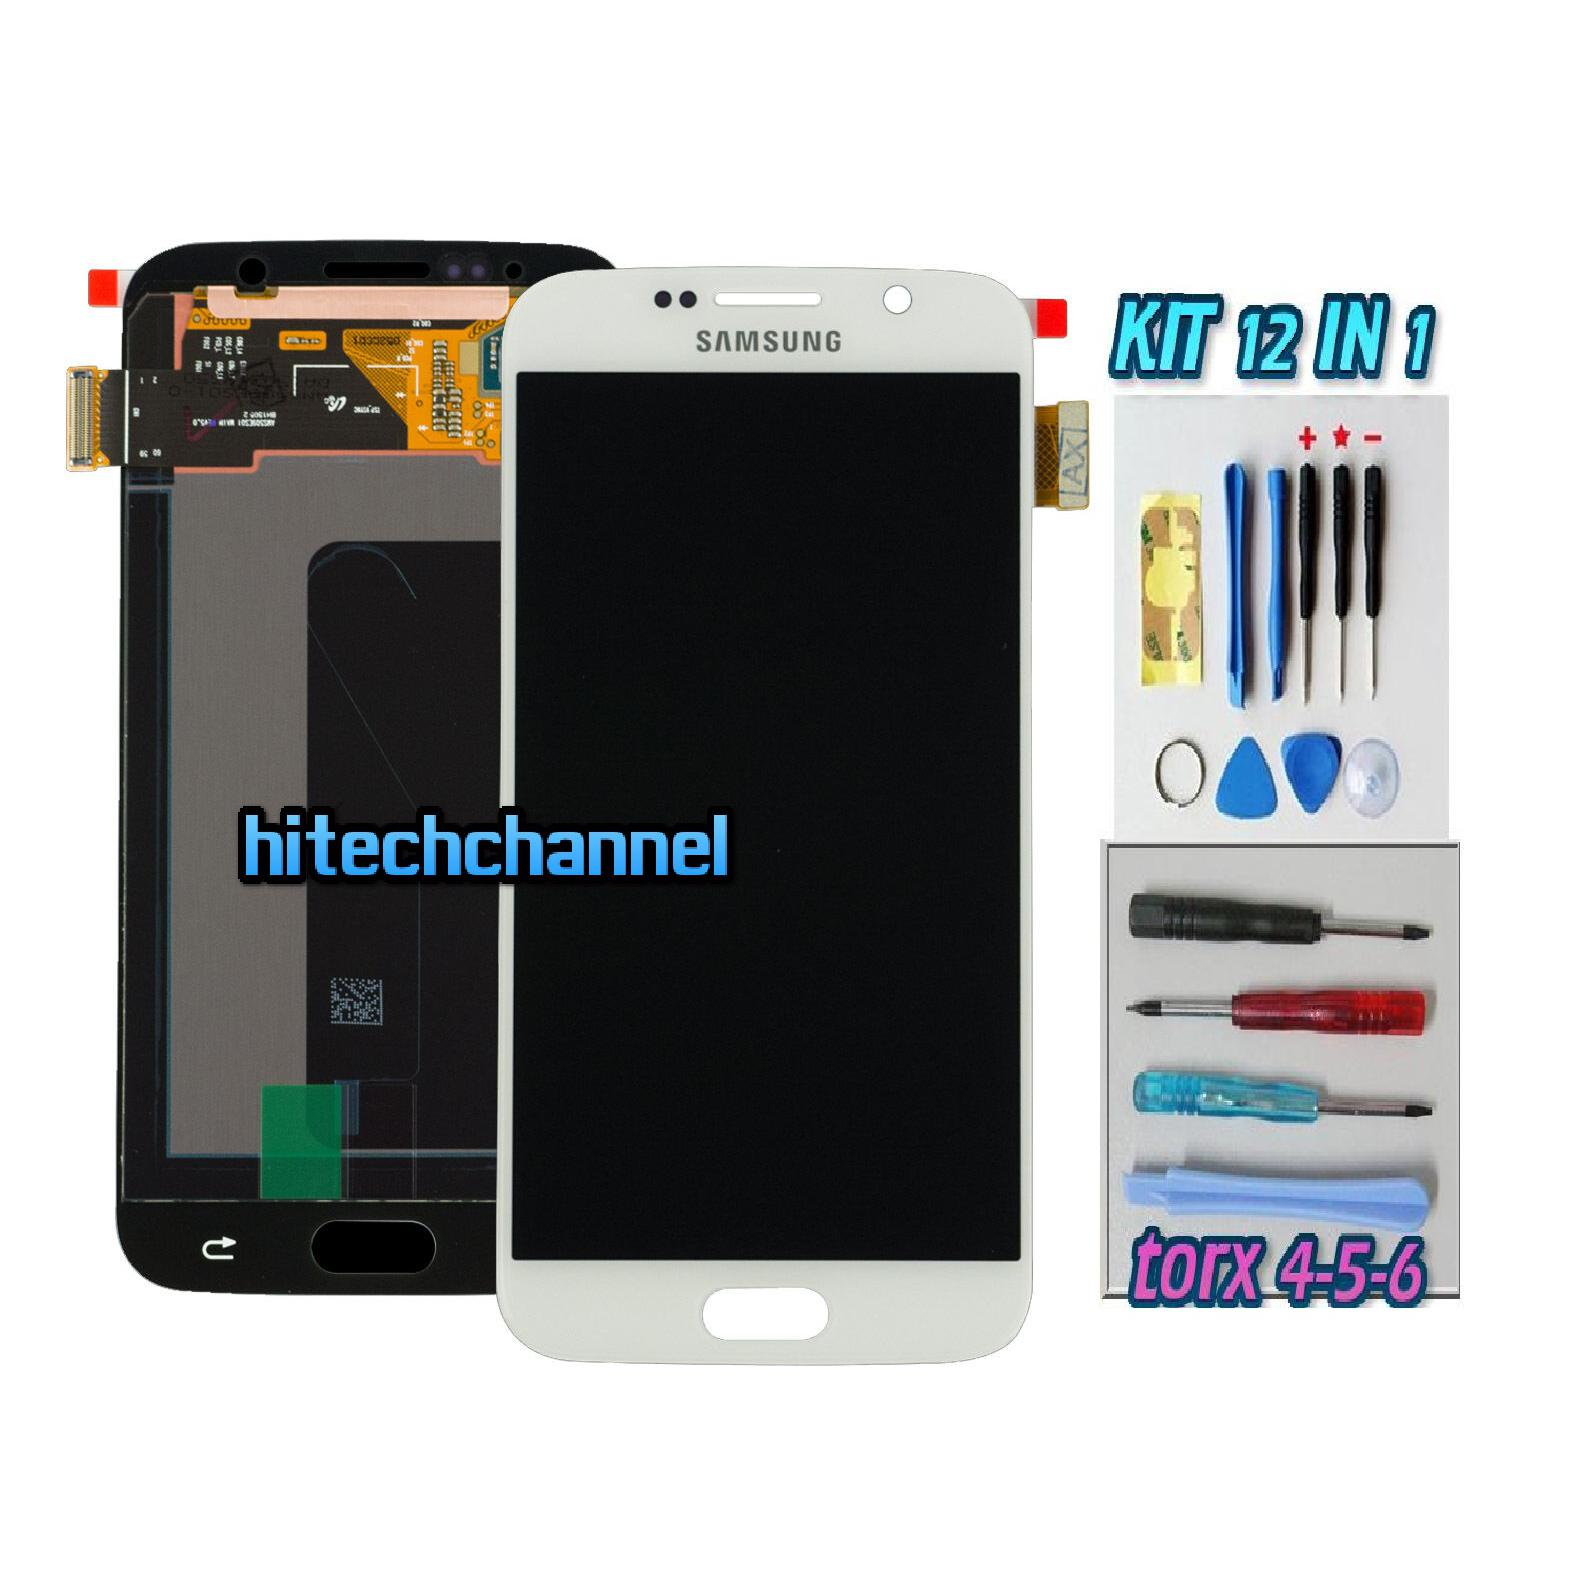 DISPLAY ORIGINALE SERVICE PACK LCD TOUCH SAMSUNG GALAXY S6 G920 BIANCO GH97-17260A con kit e biadesivo